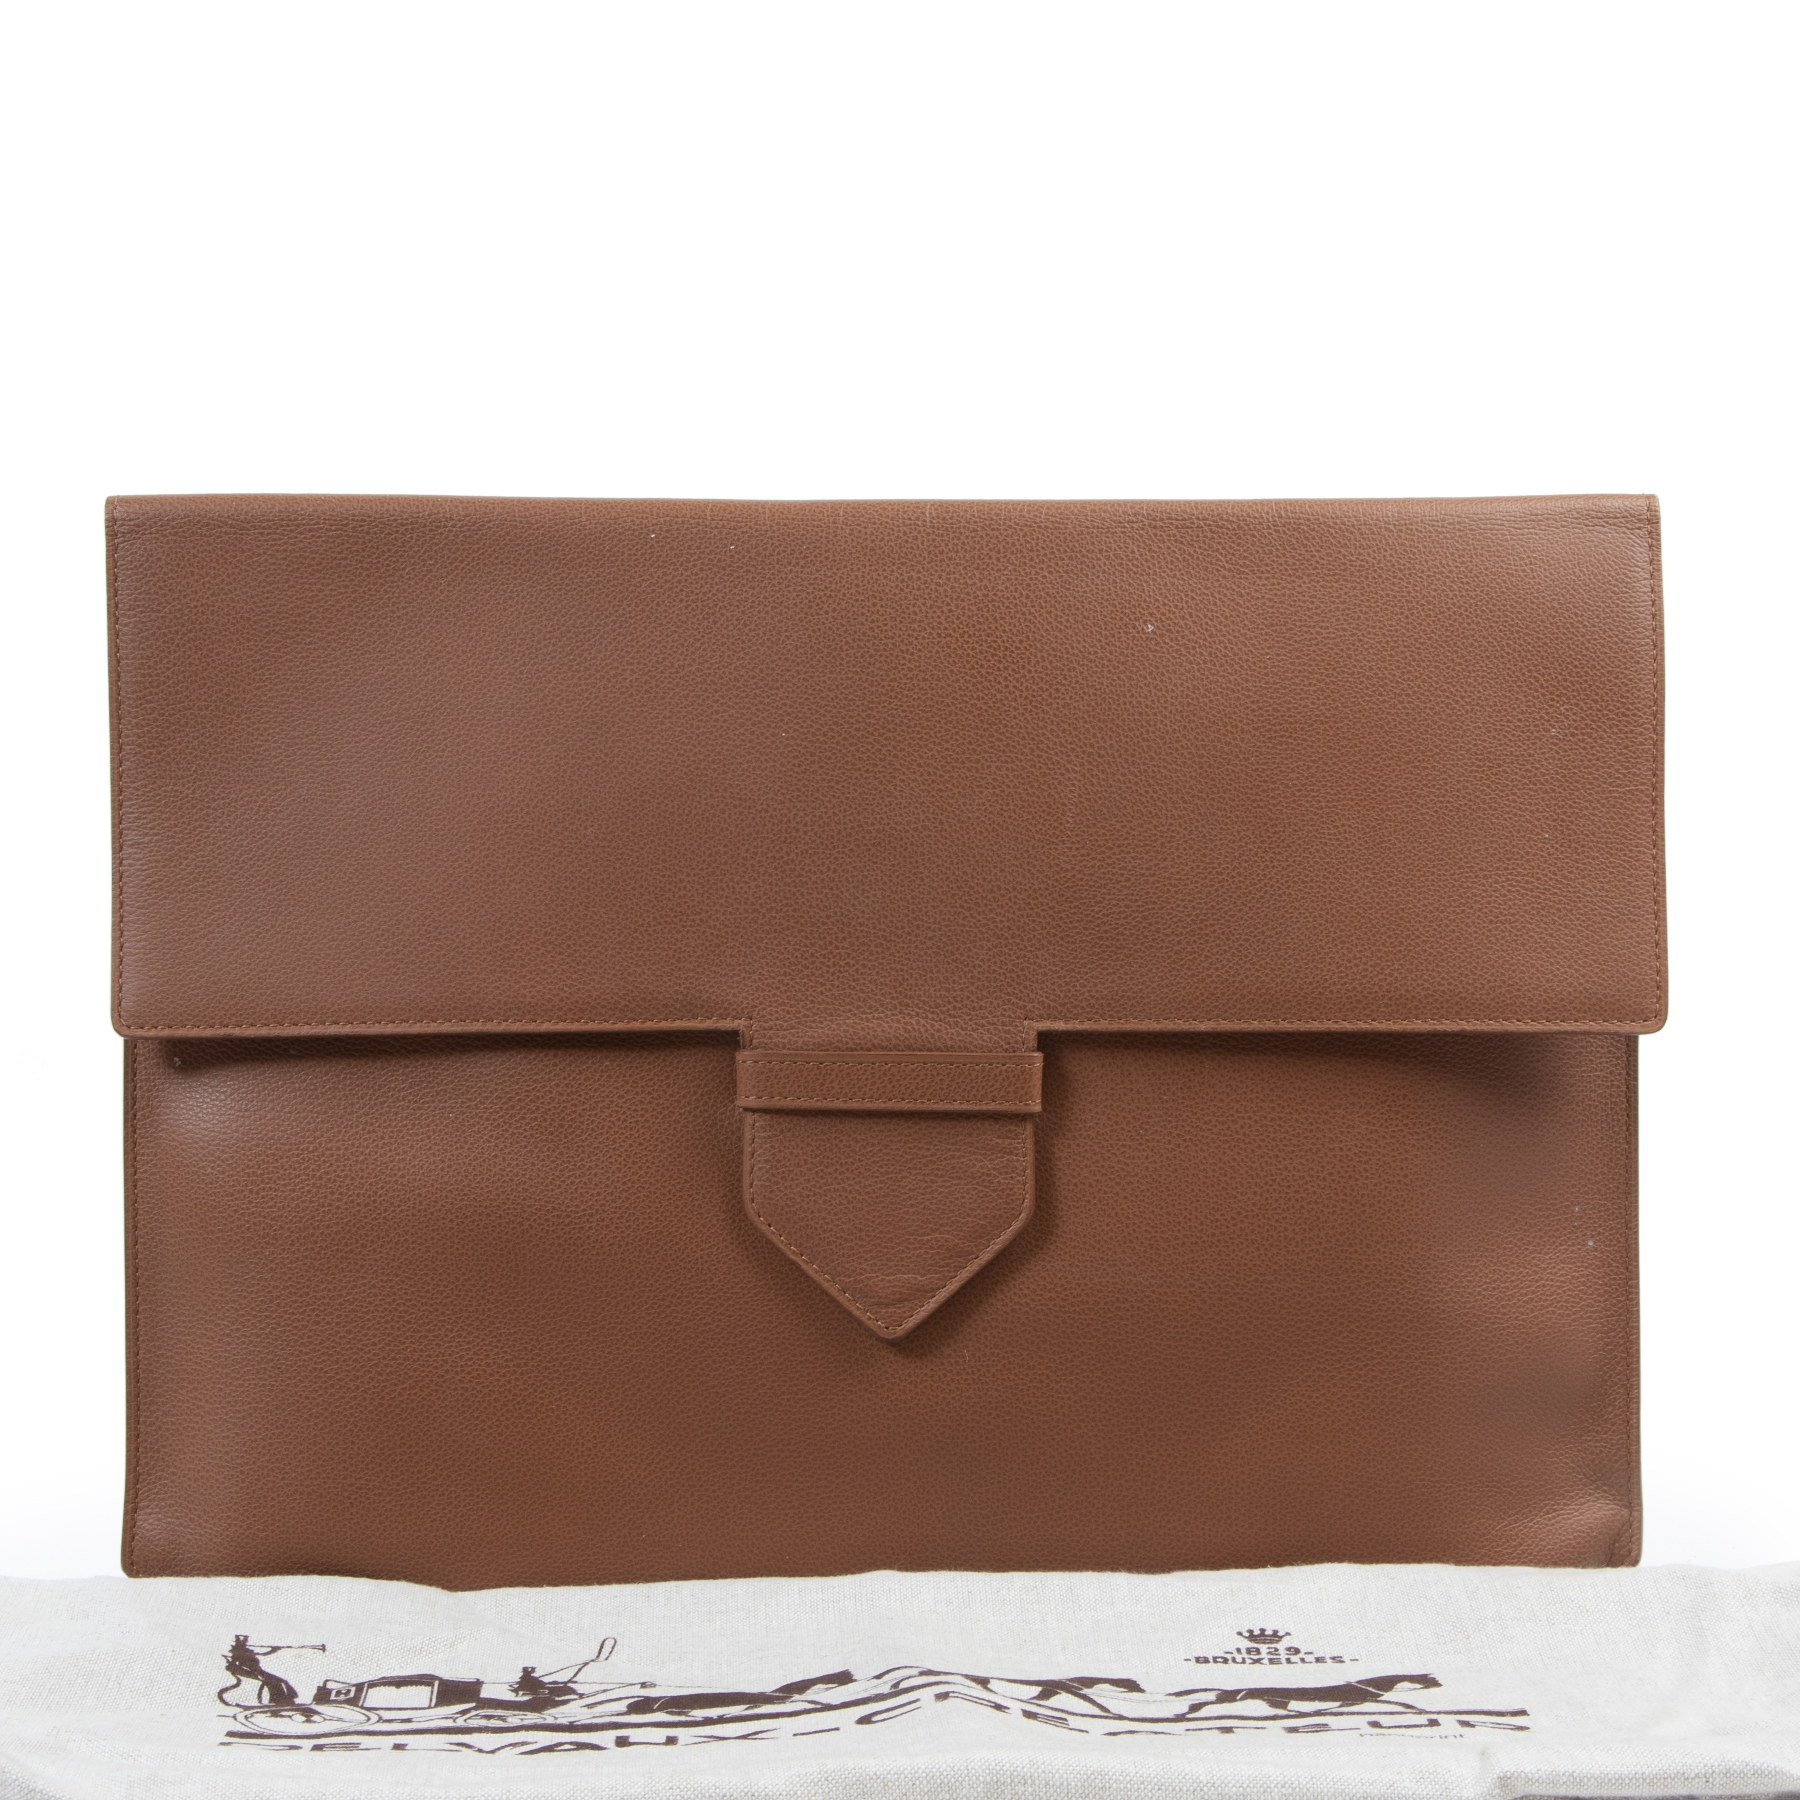 Delvaux Brown Leather A4 Presse Pouch te koop